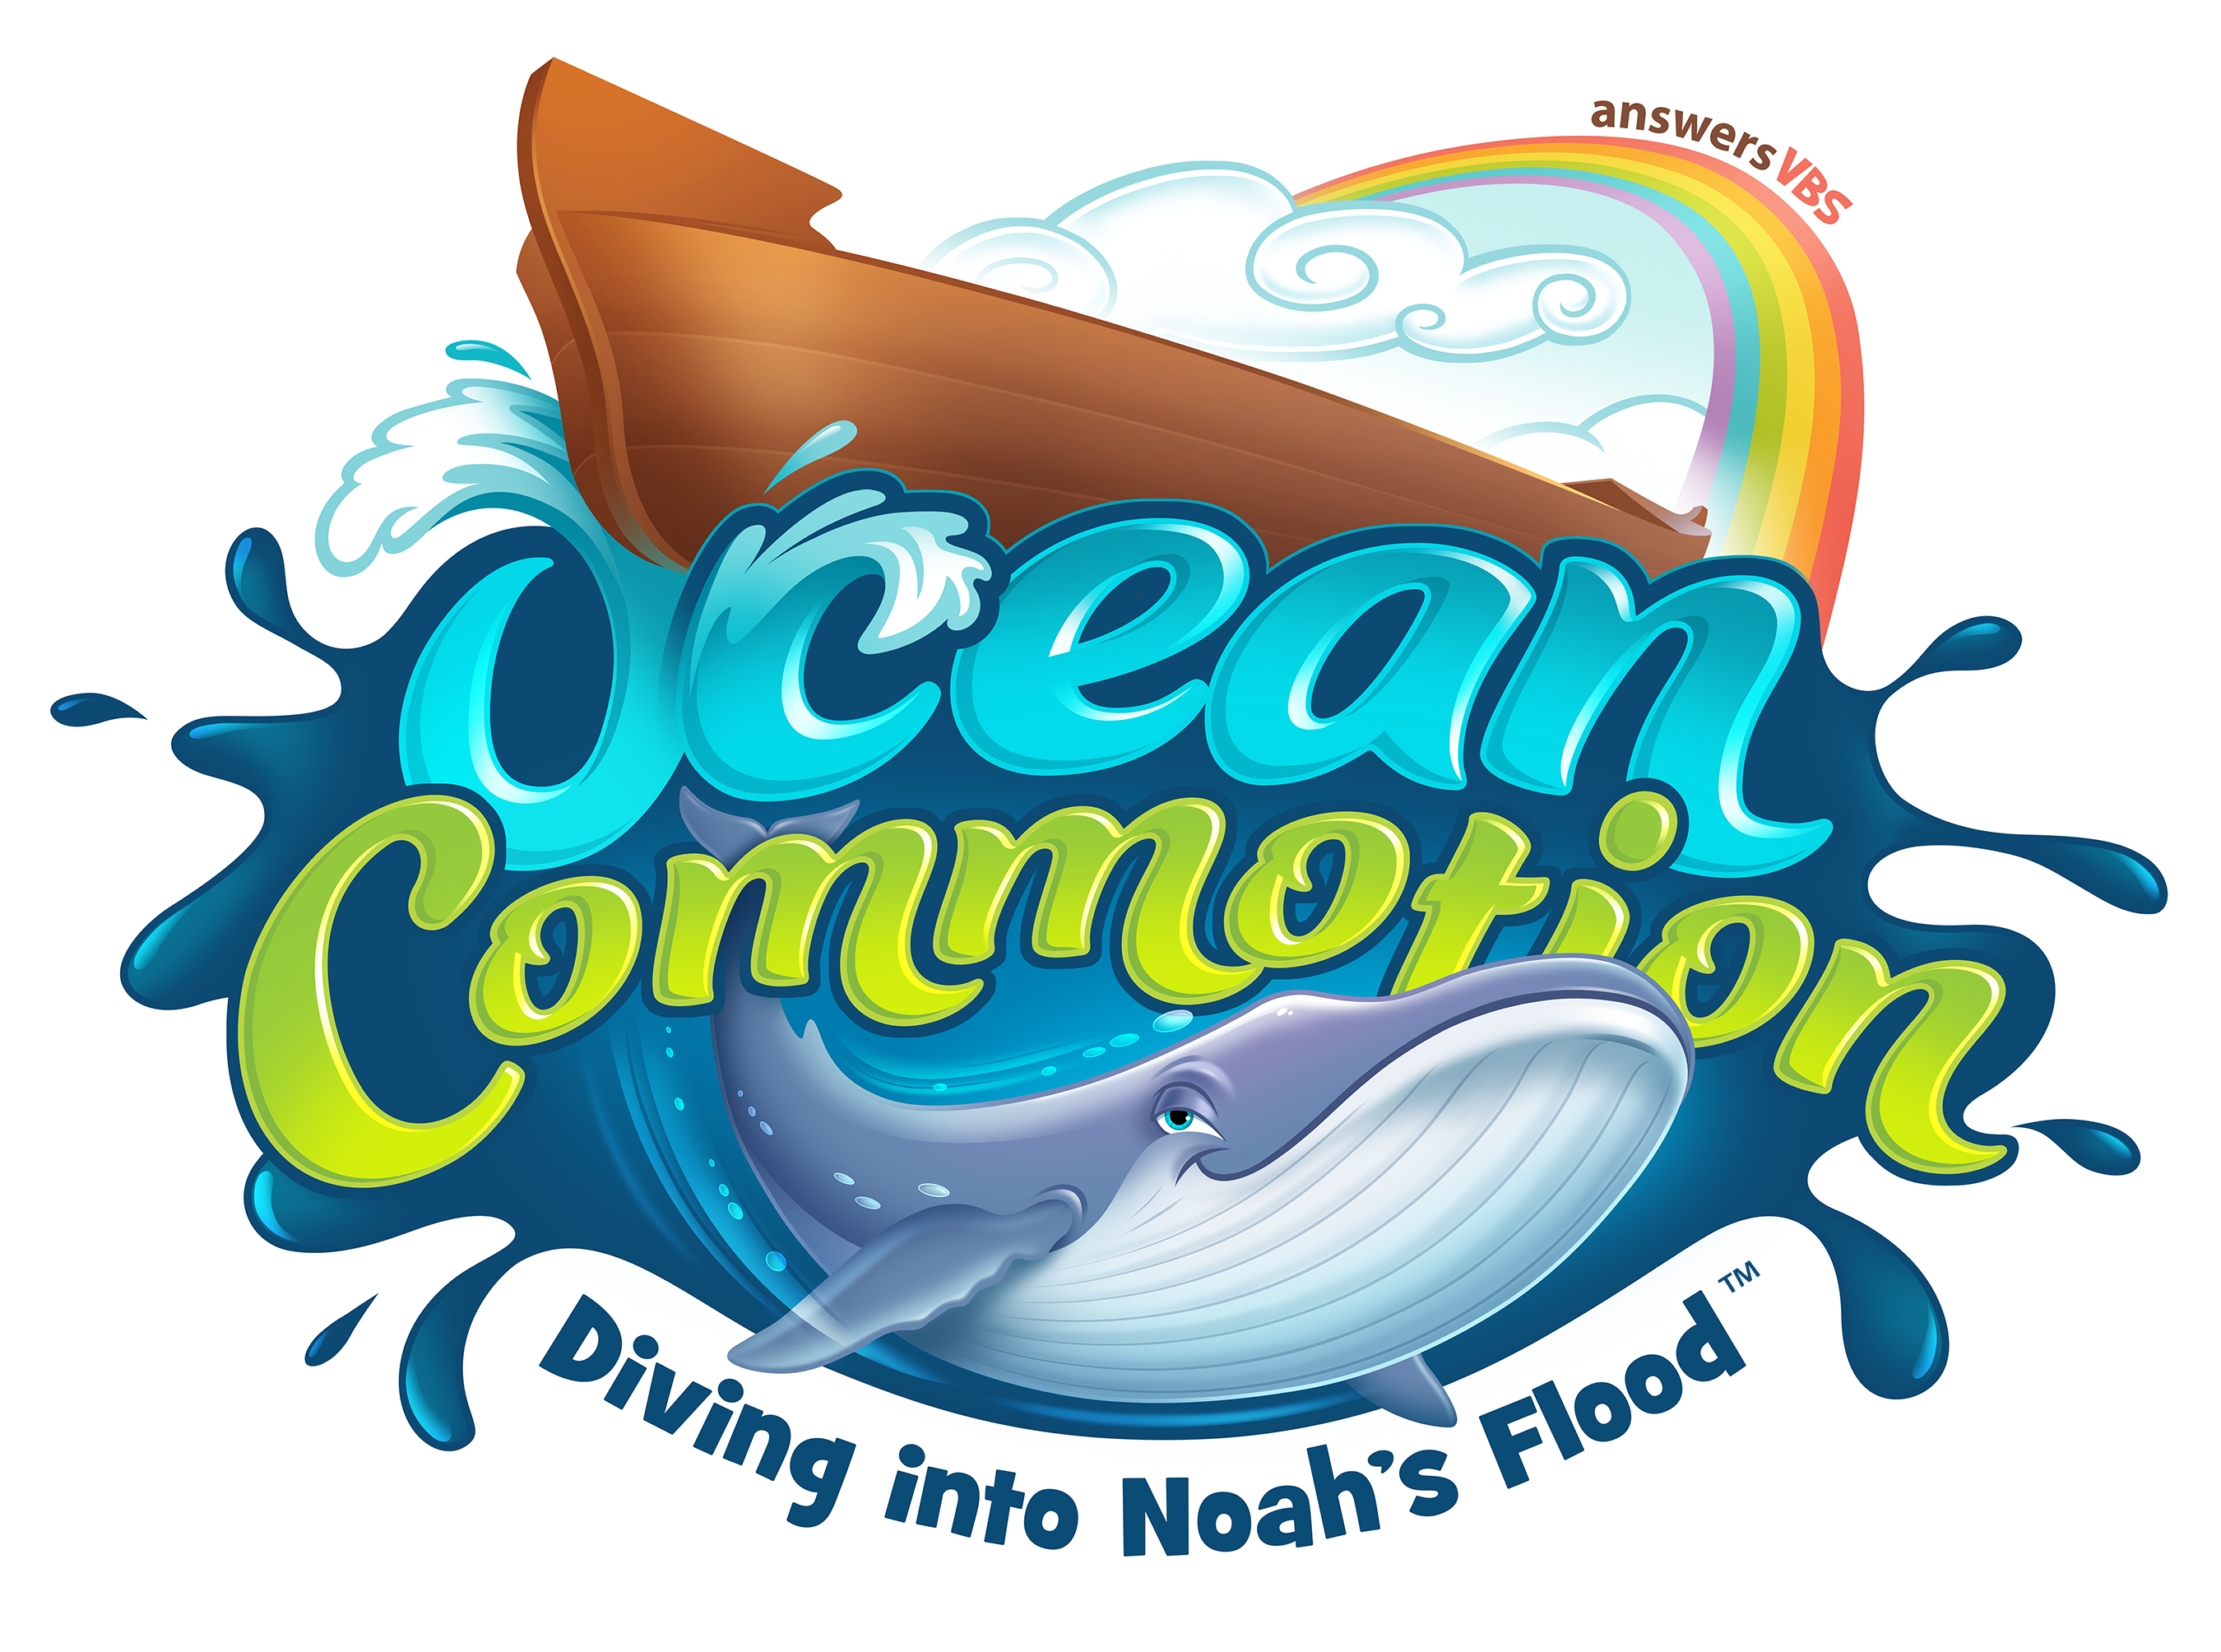 Bible school clipart svg download Ocean Commotion Resources | Answers VBS 2016 svg download